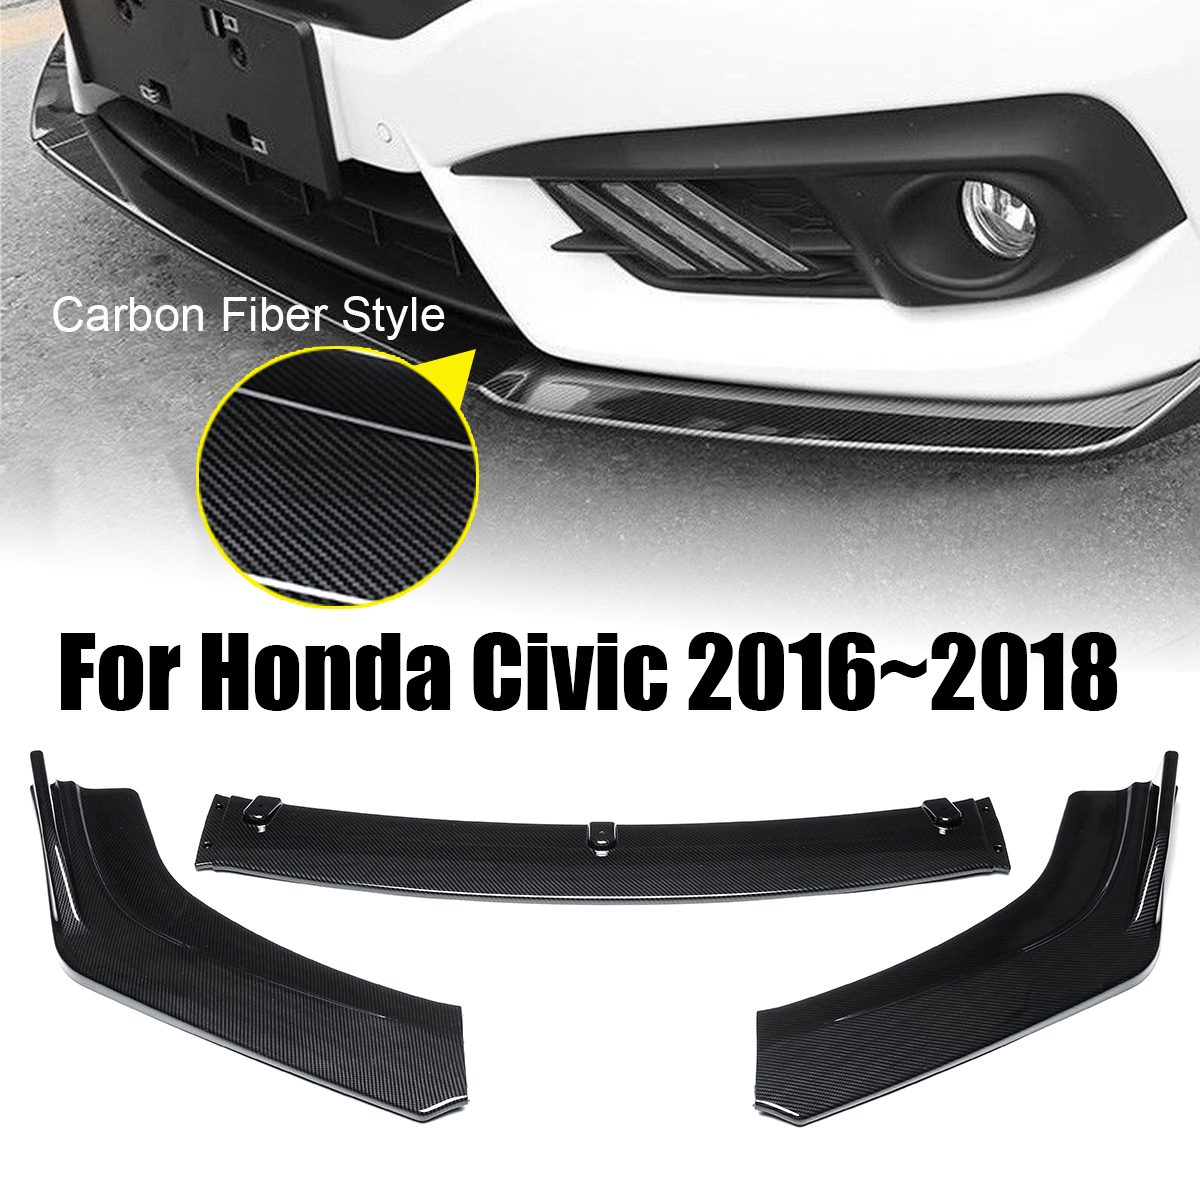 3PCs ABS Carbon Fiber Style Front Bumper Cover Lip Front Spoiler For Honda For Civic 2016~2018 Splitters Air Vent Cover Trim 3pcs carbon fiber style car front bumper front lip cover trim fit for honda accord 2018 car exterior accessories styling